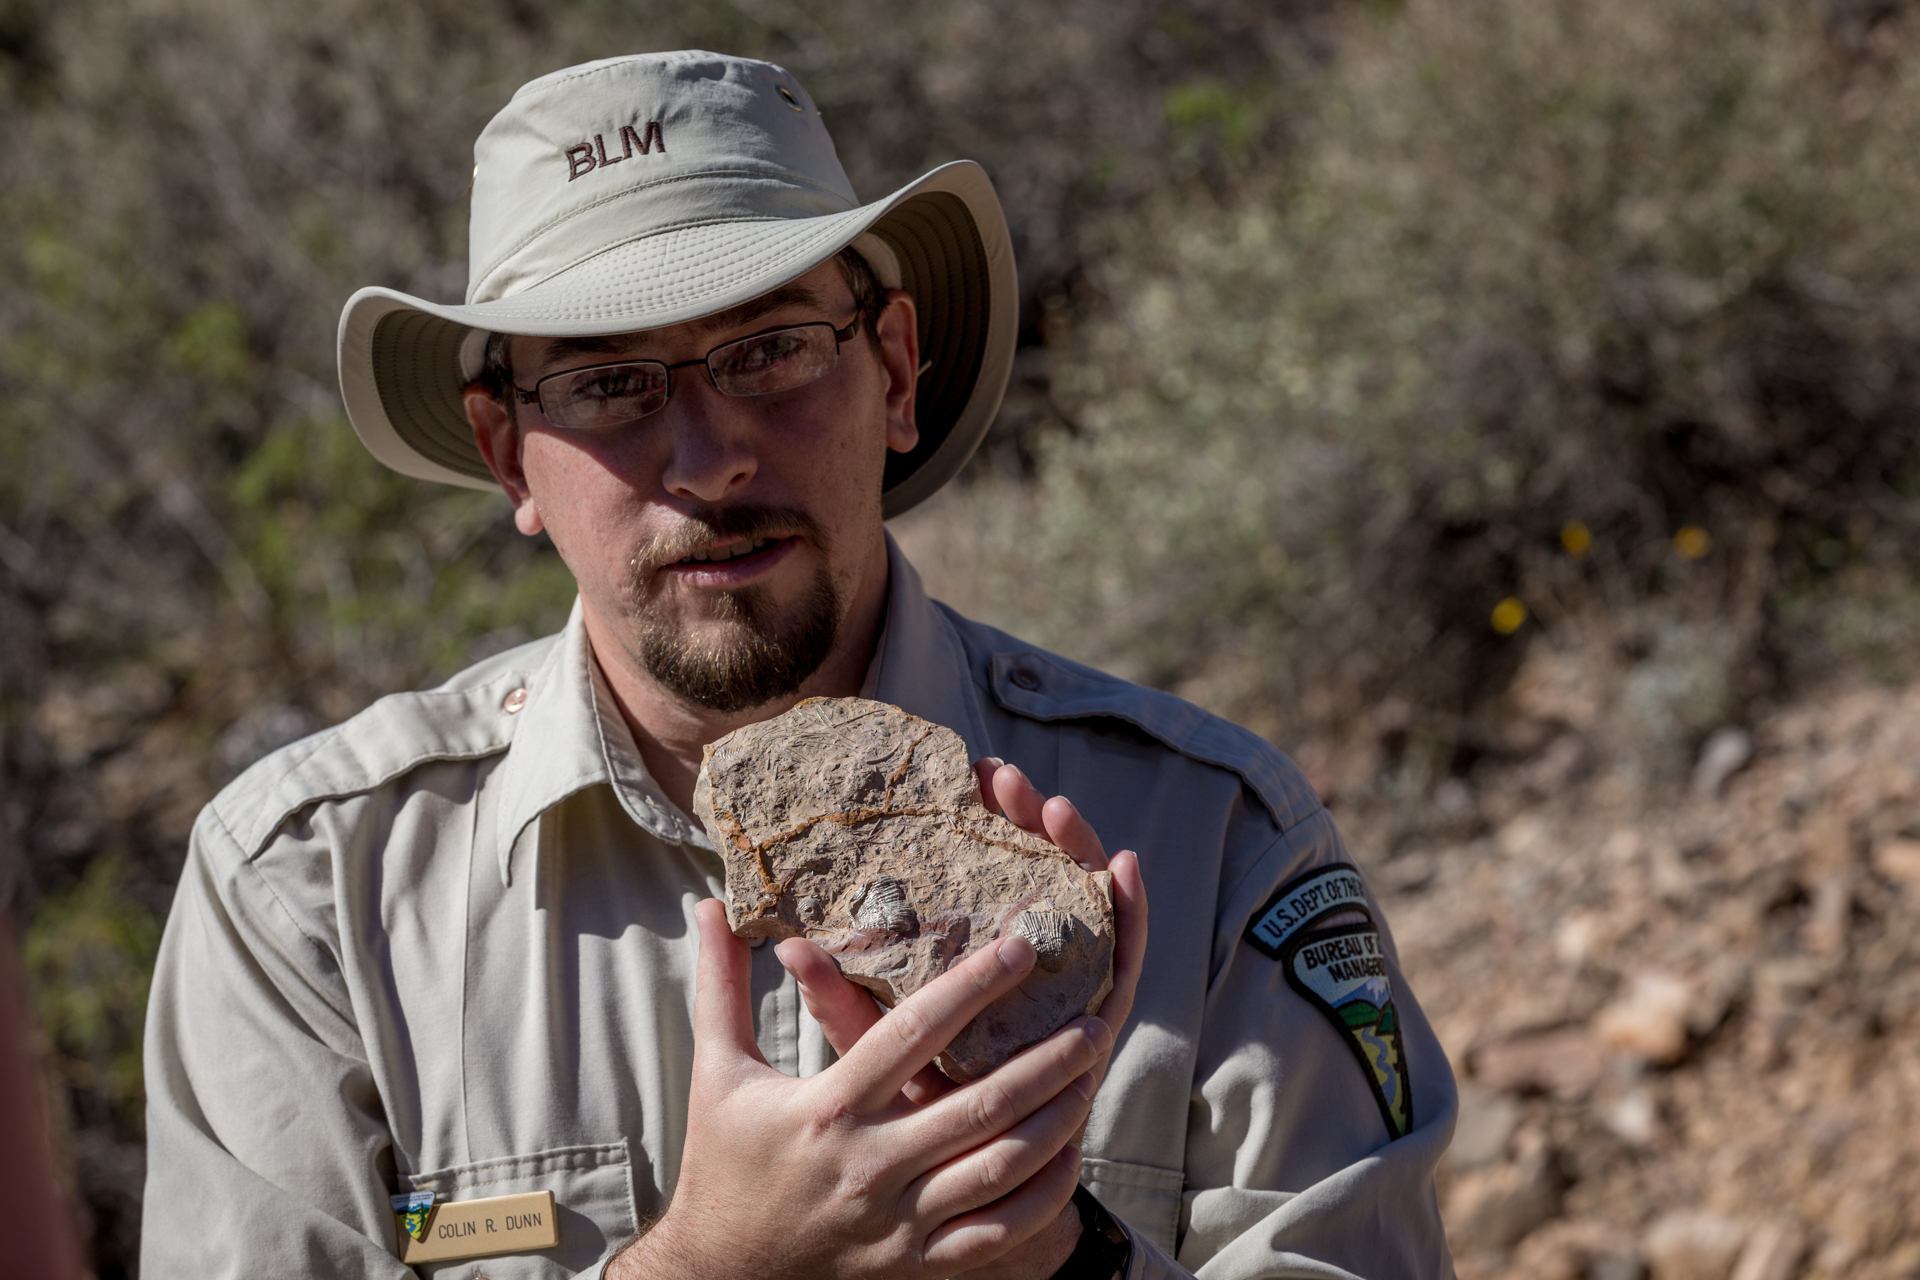 Colin Dunn, paleontologist with the Bureau of Land Management, shows us a rock loaded with fossils.